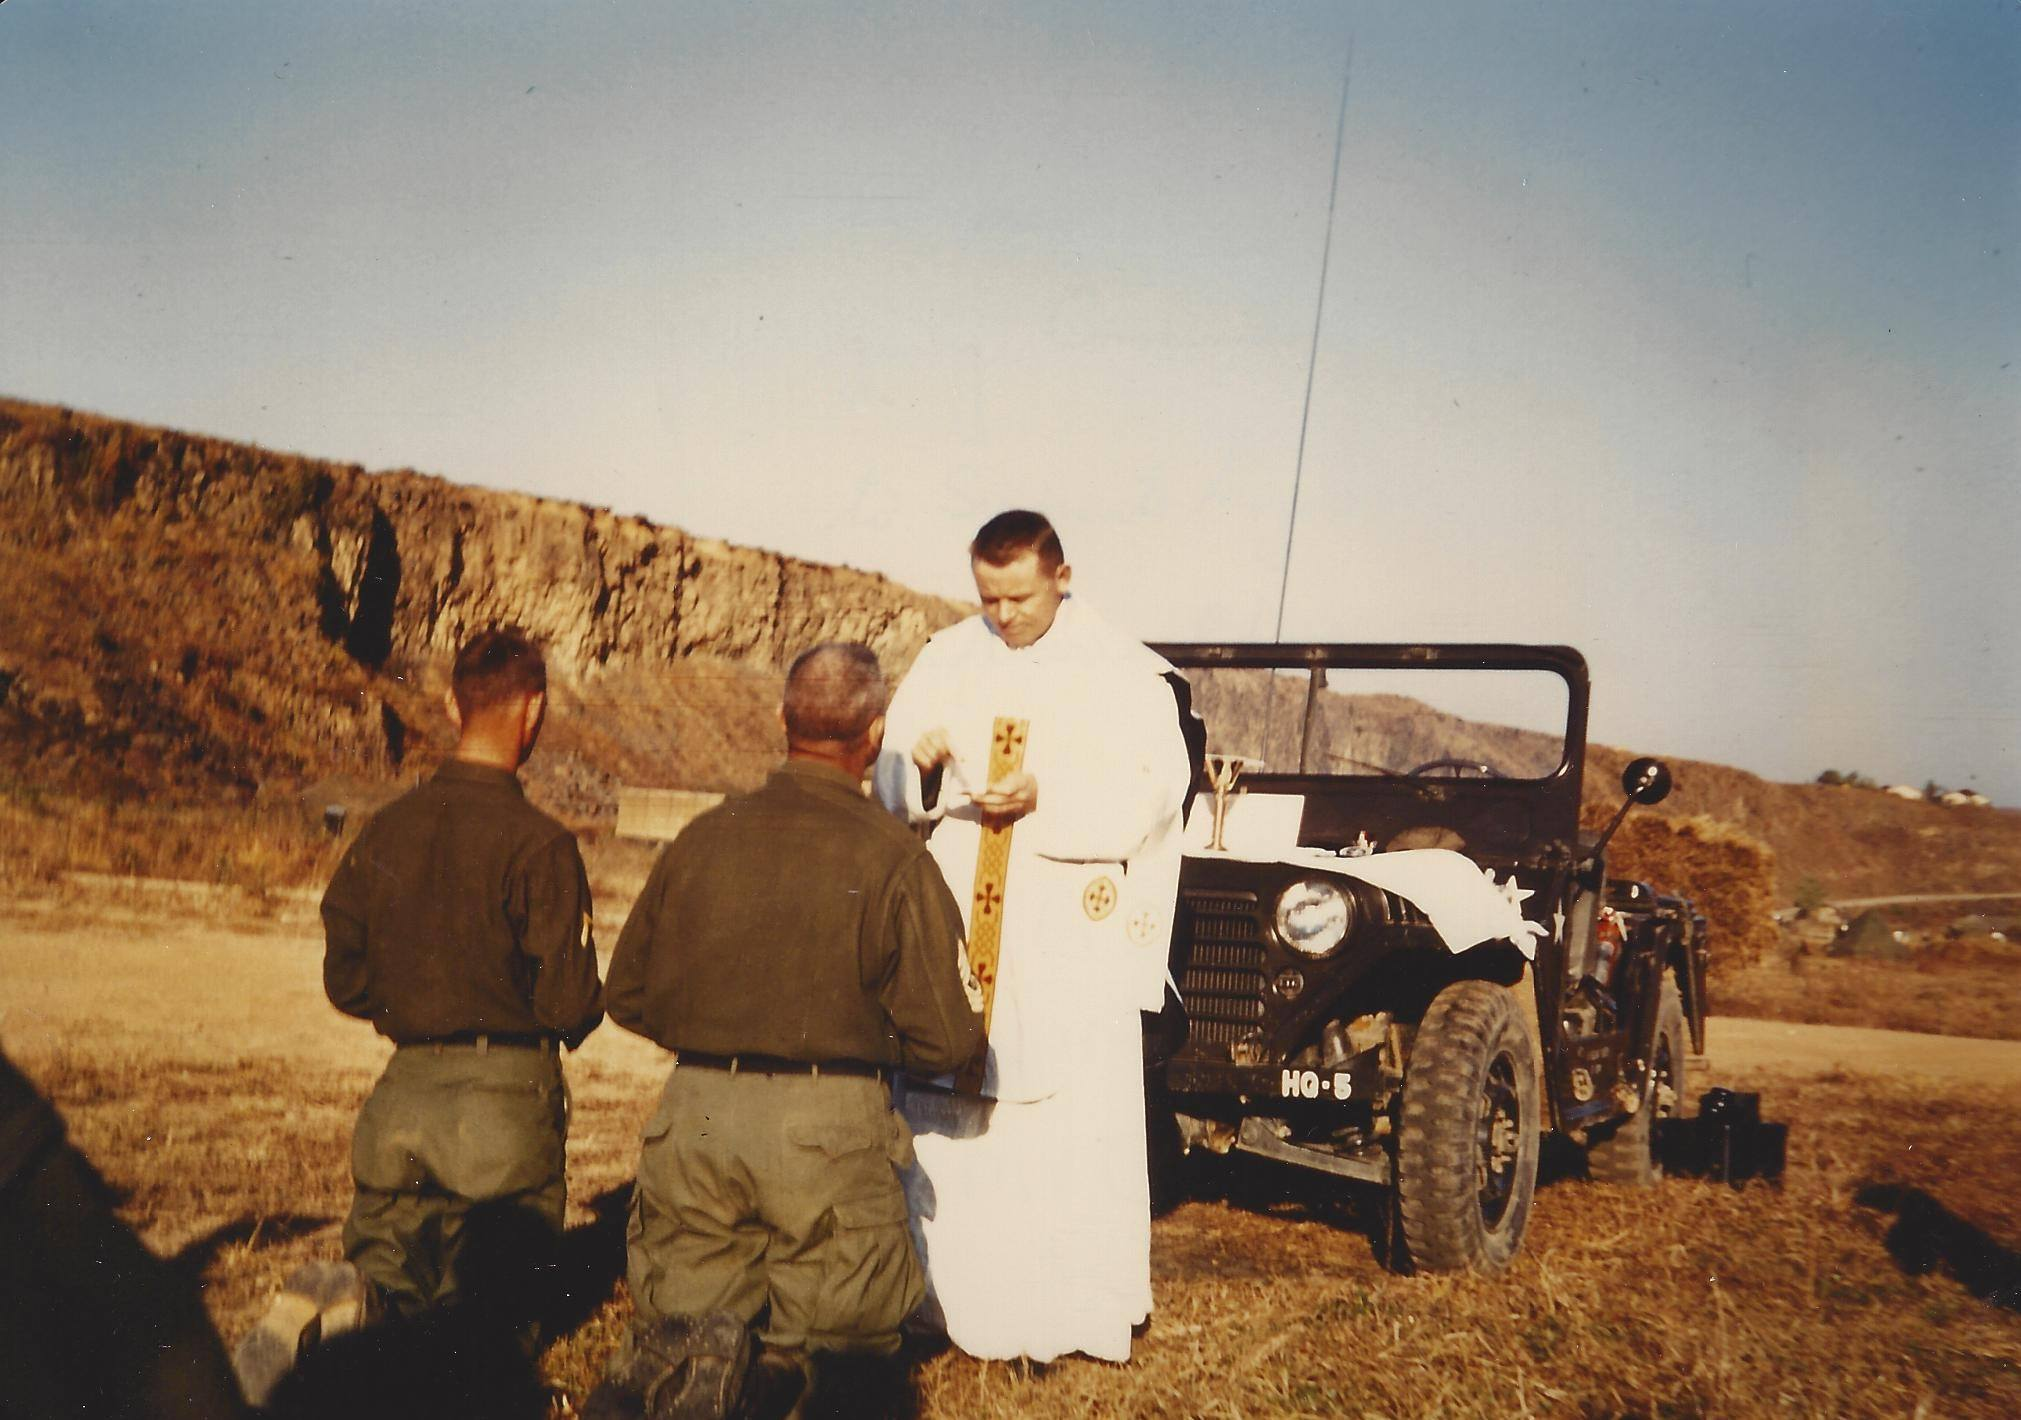 Paulist Fr. Kevin Devine speaking at the end of a Mass in Korea during his service as a U.S. Army chaplain.